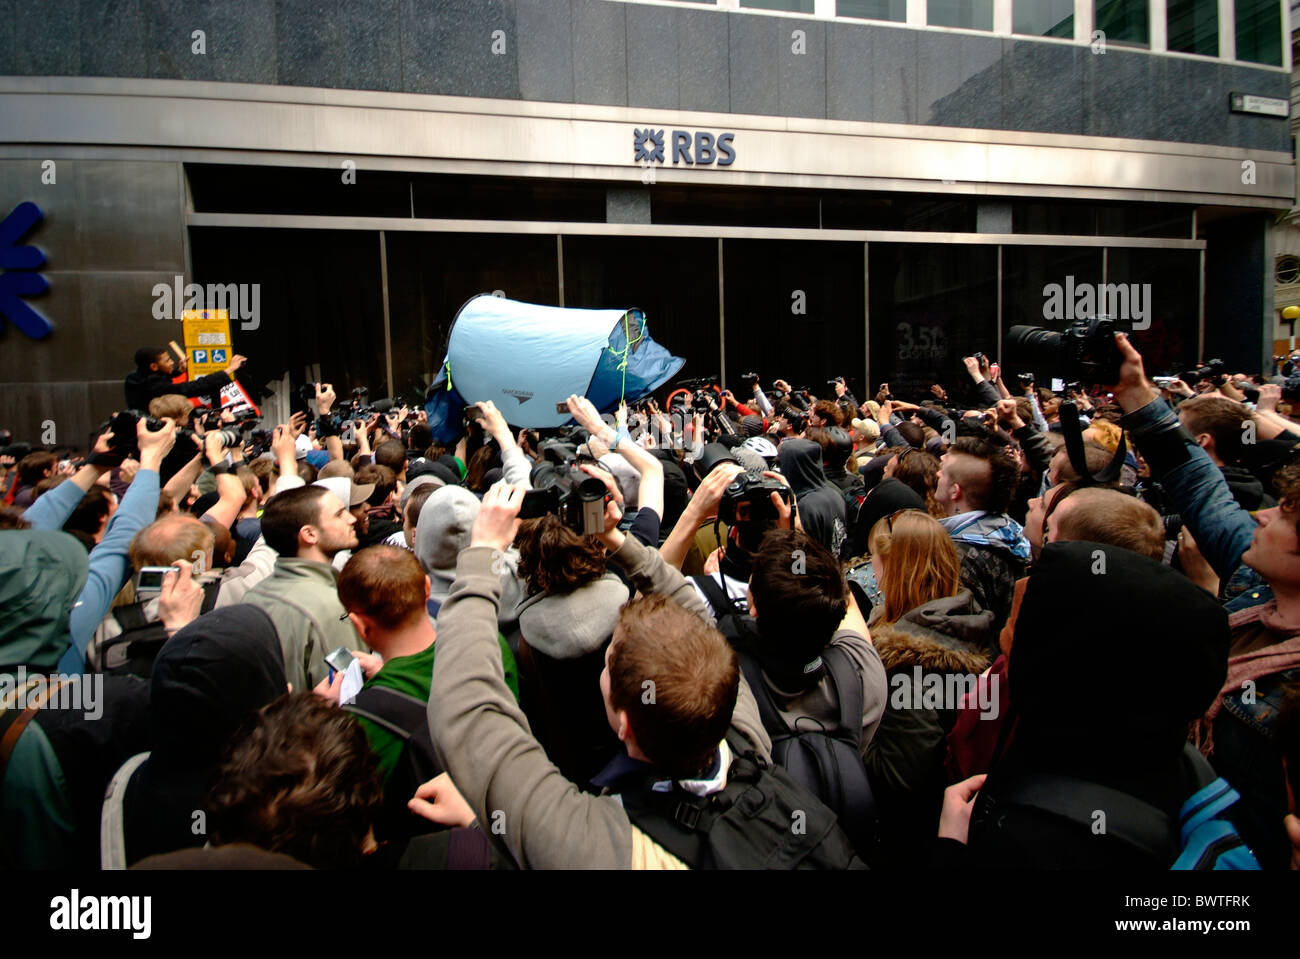 G20 bankers bailout protest in City of London, UK as RBS bank is attacked during the summit of world leaders. - Stock Image